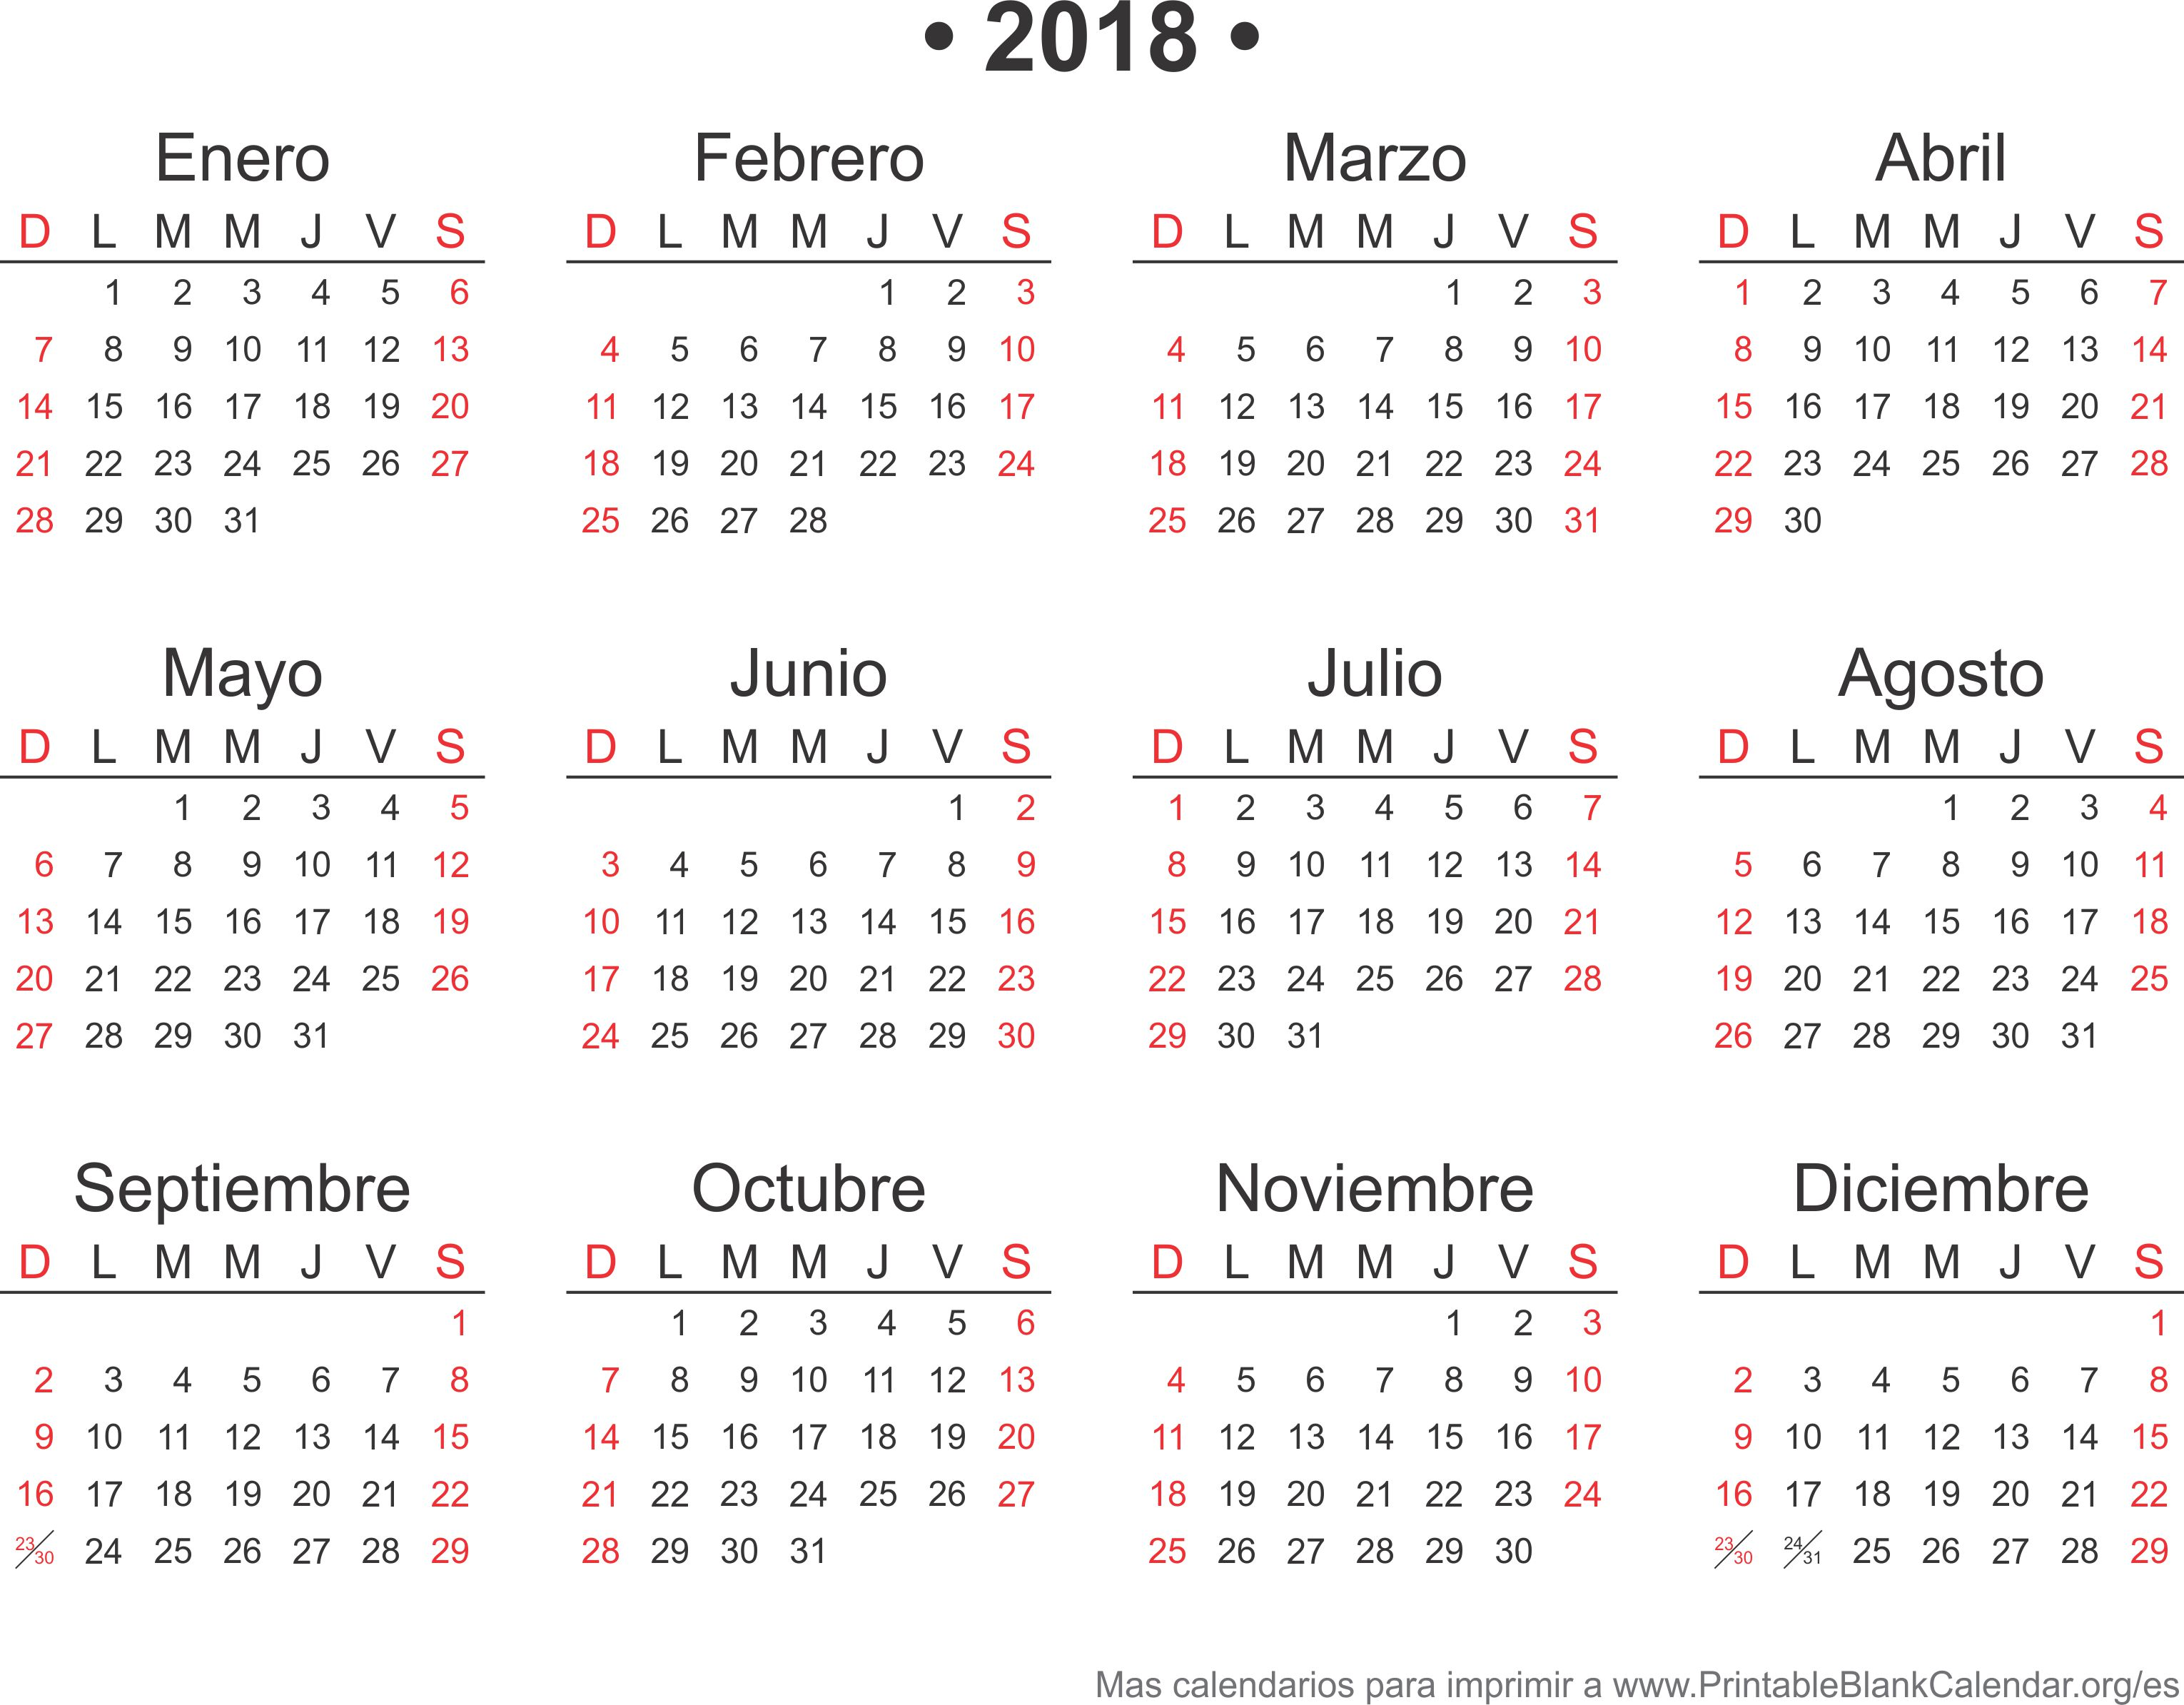 2018 calendarios anuales para imprimir calendarios para for Calendario junio 2016 para imprimir